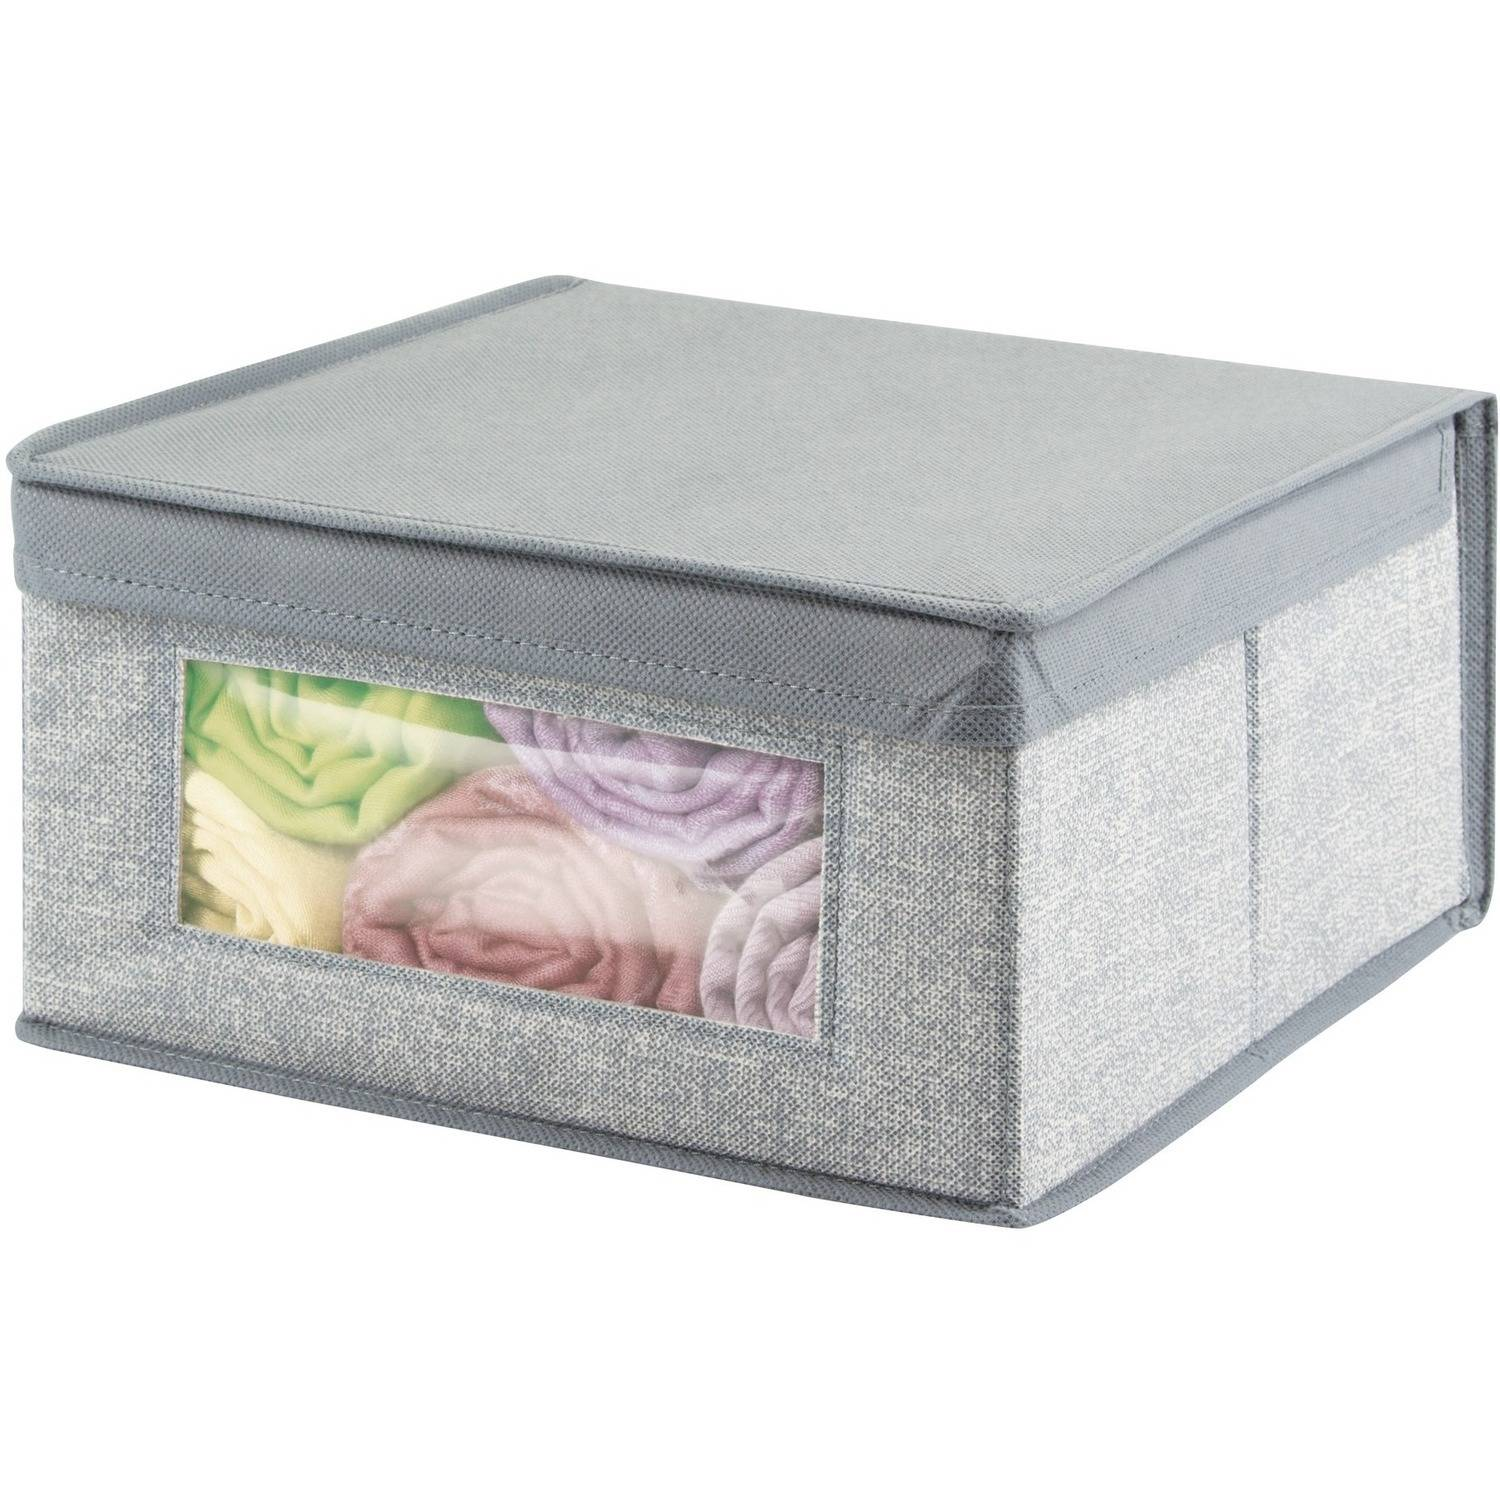 Incroyable InterDesign Aldo Fabric Storage Box, Various Sizes, Grey